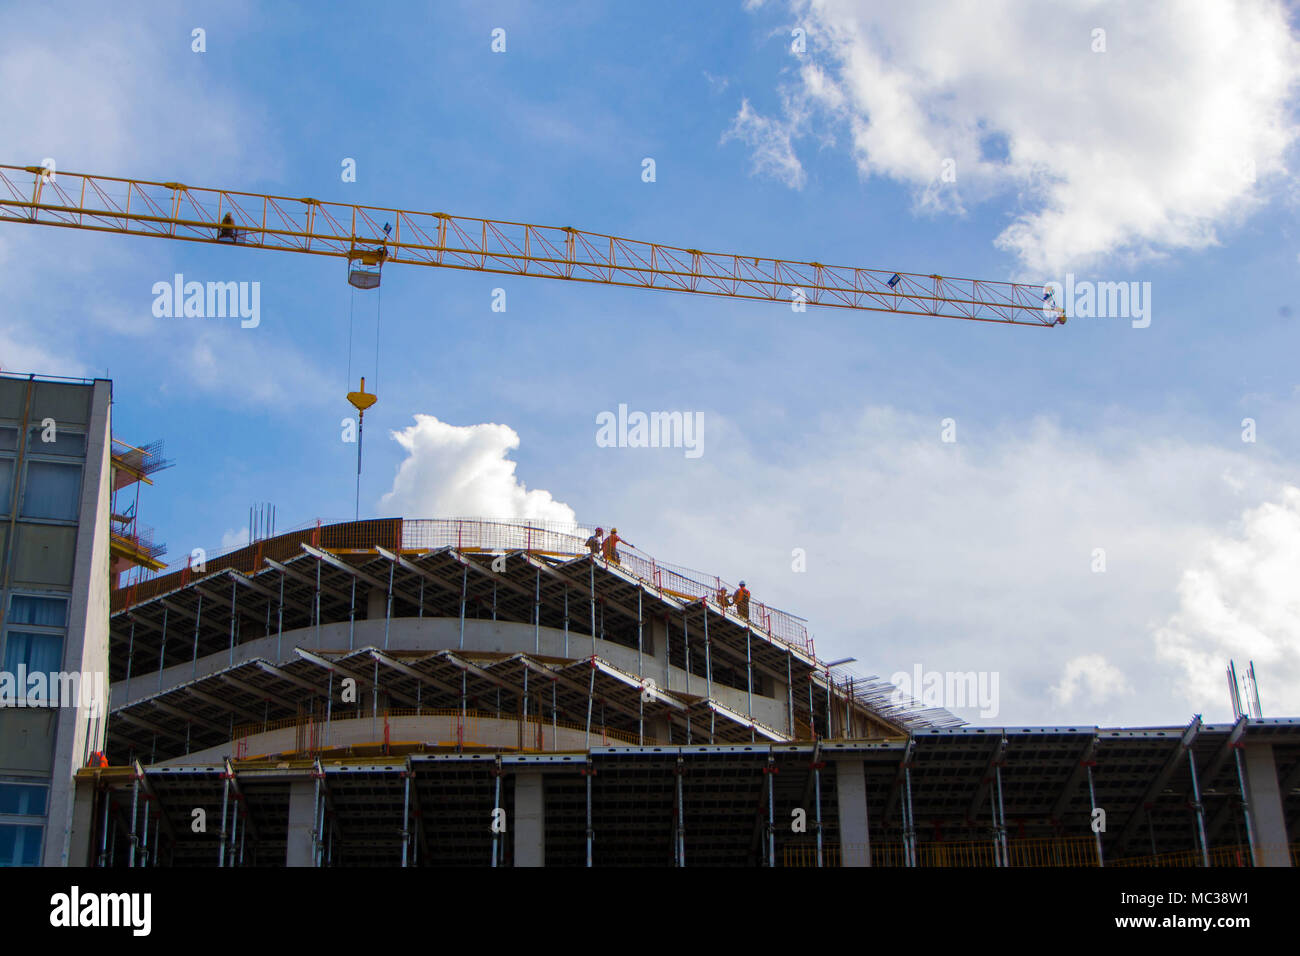 Crane and construction workers. Workers on multi-story building. - Stock Image